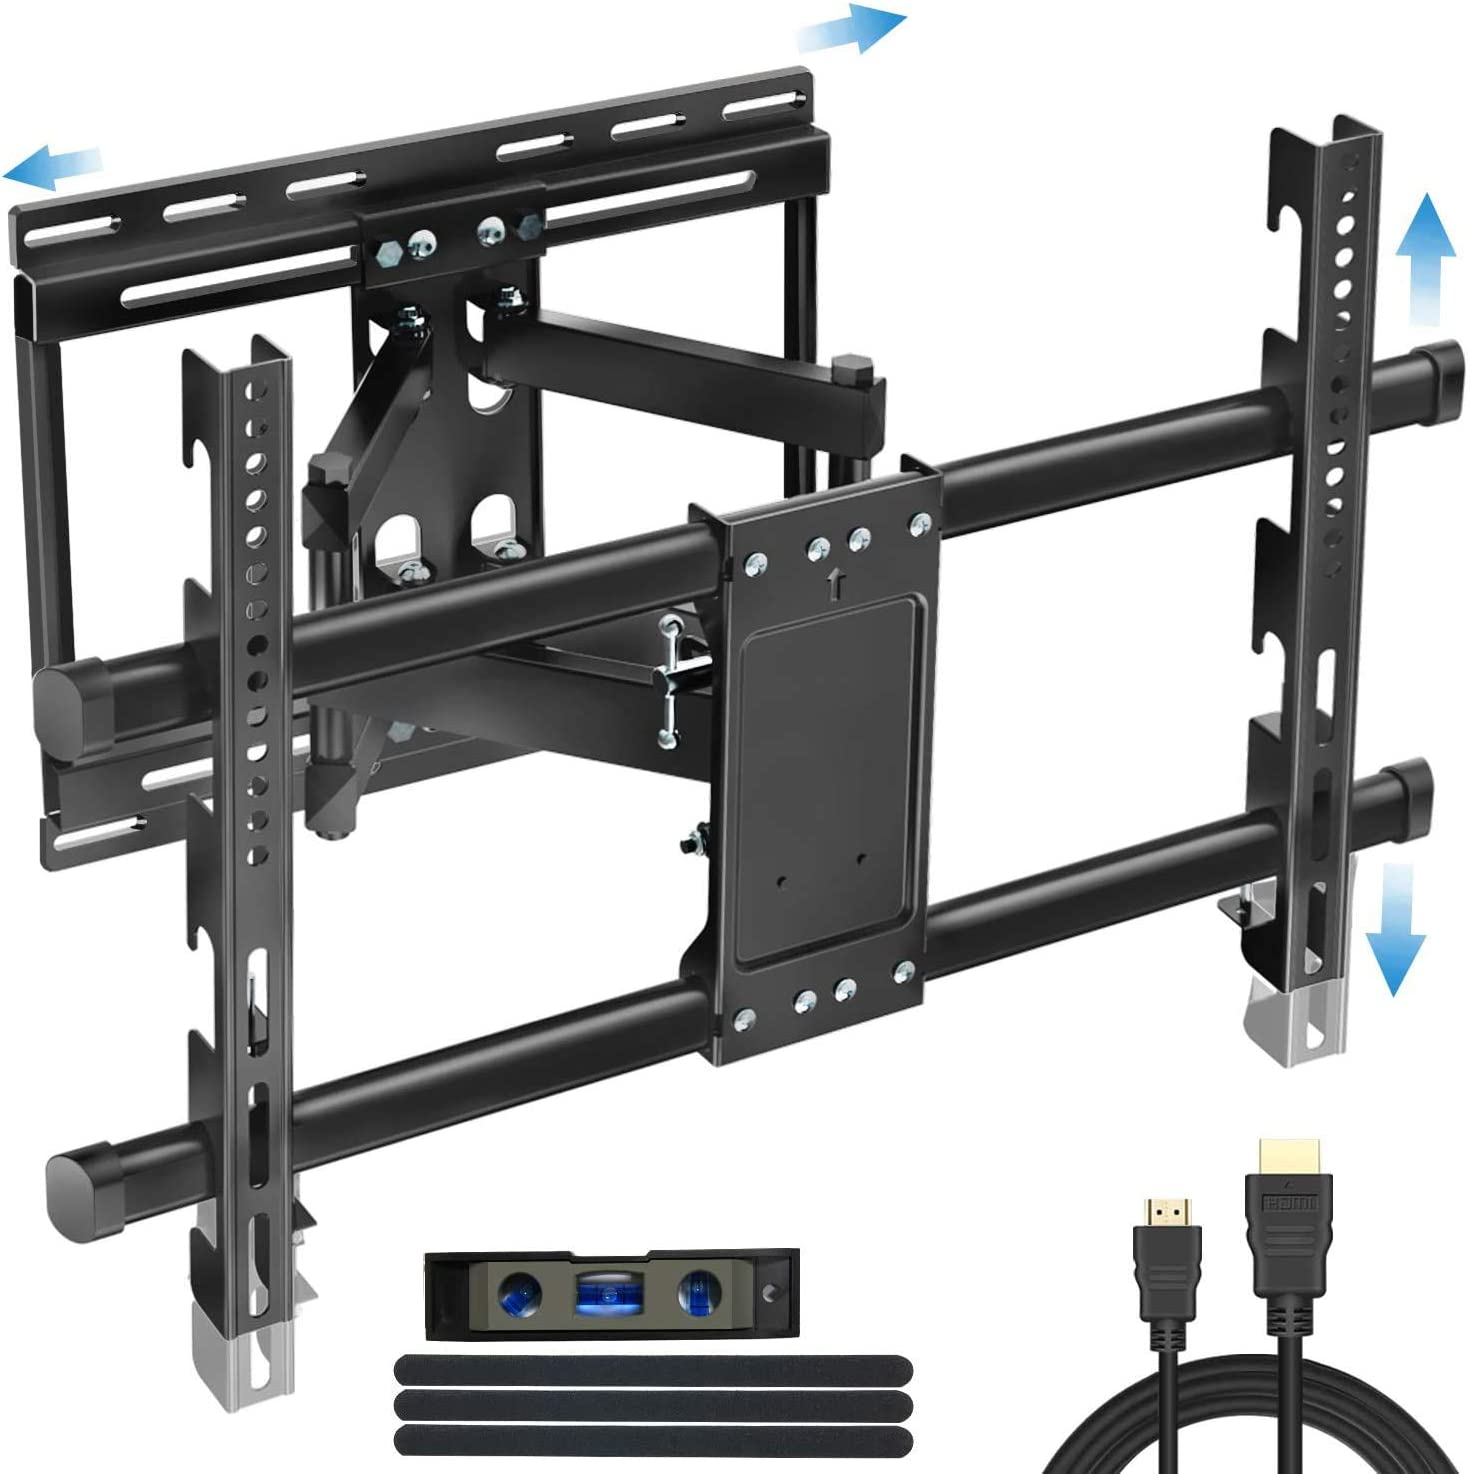 Full Motion TV Wall Mount Bracket-BLUE STONE Dual Swivel Articulating Arms with Sliding for 32-80 inch TVs up to 99lbsfor Flat Screen,LED,4K,Curved TVs with VESA 600x400mm